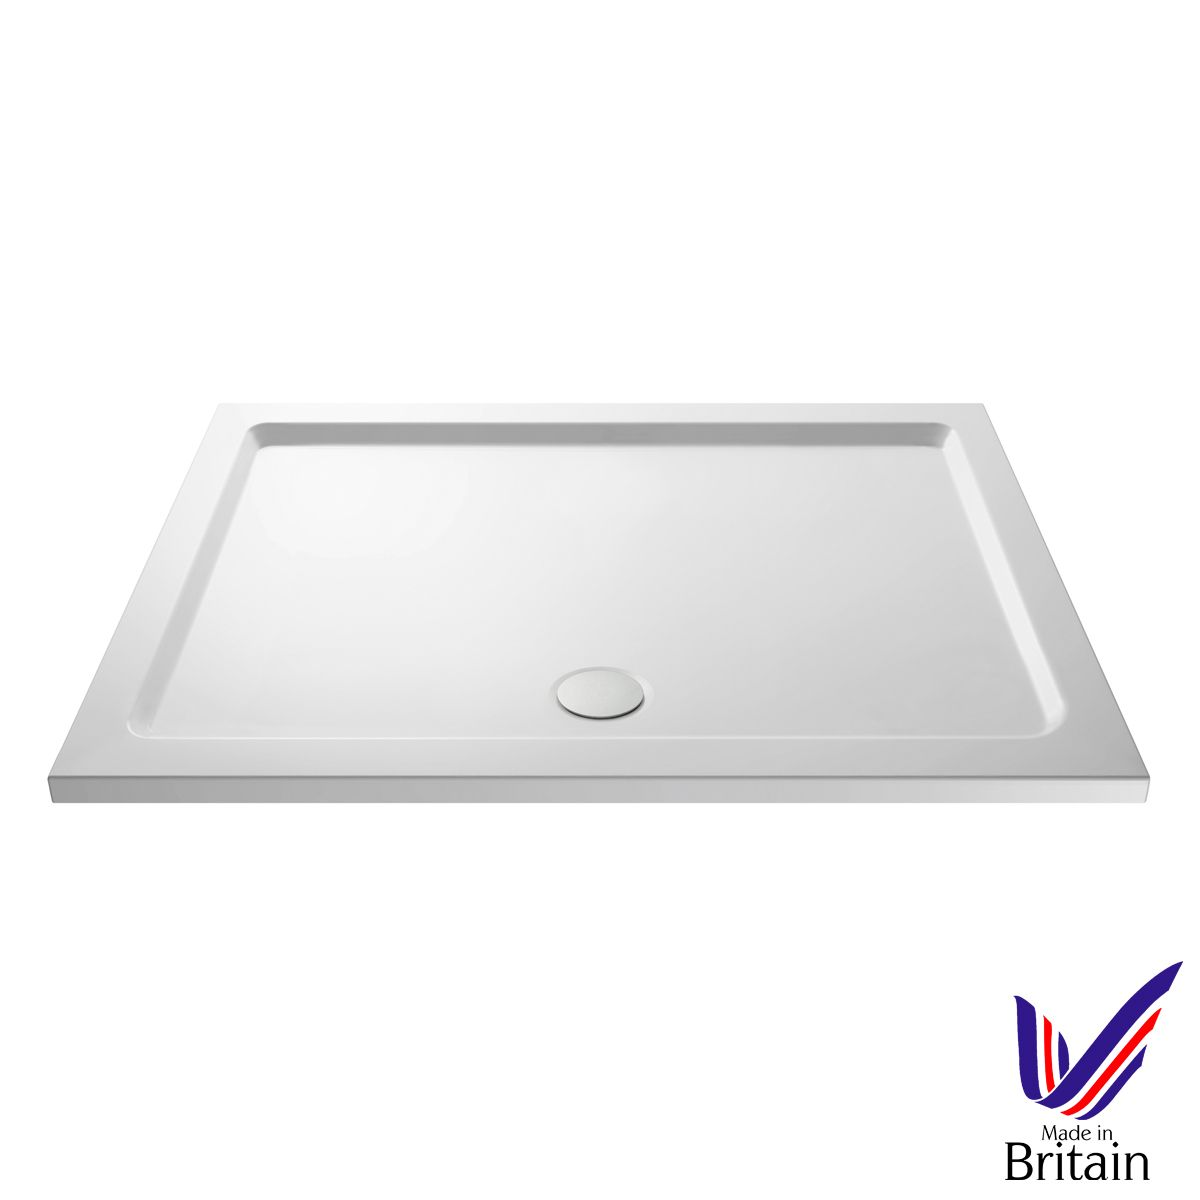 1700 x 760 Shower Tray Rectangular Low Profile by Pearlstone